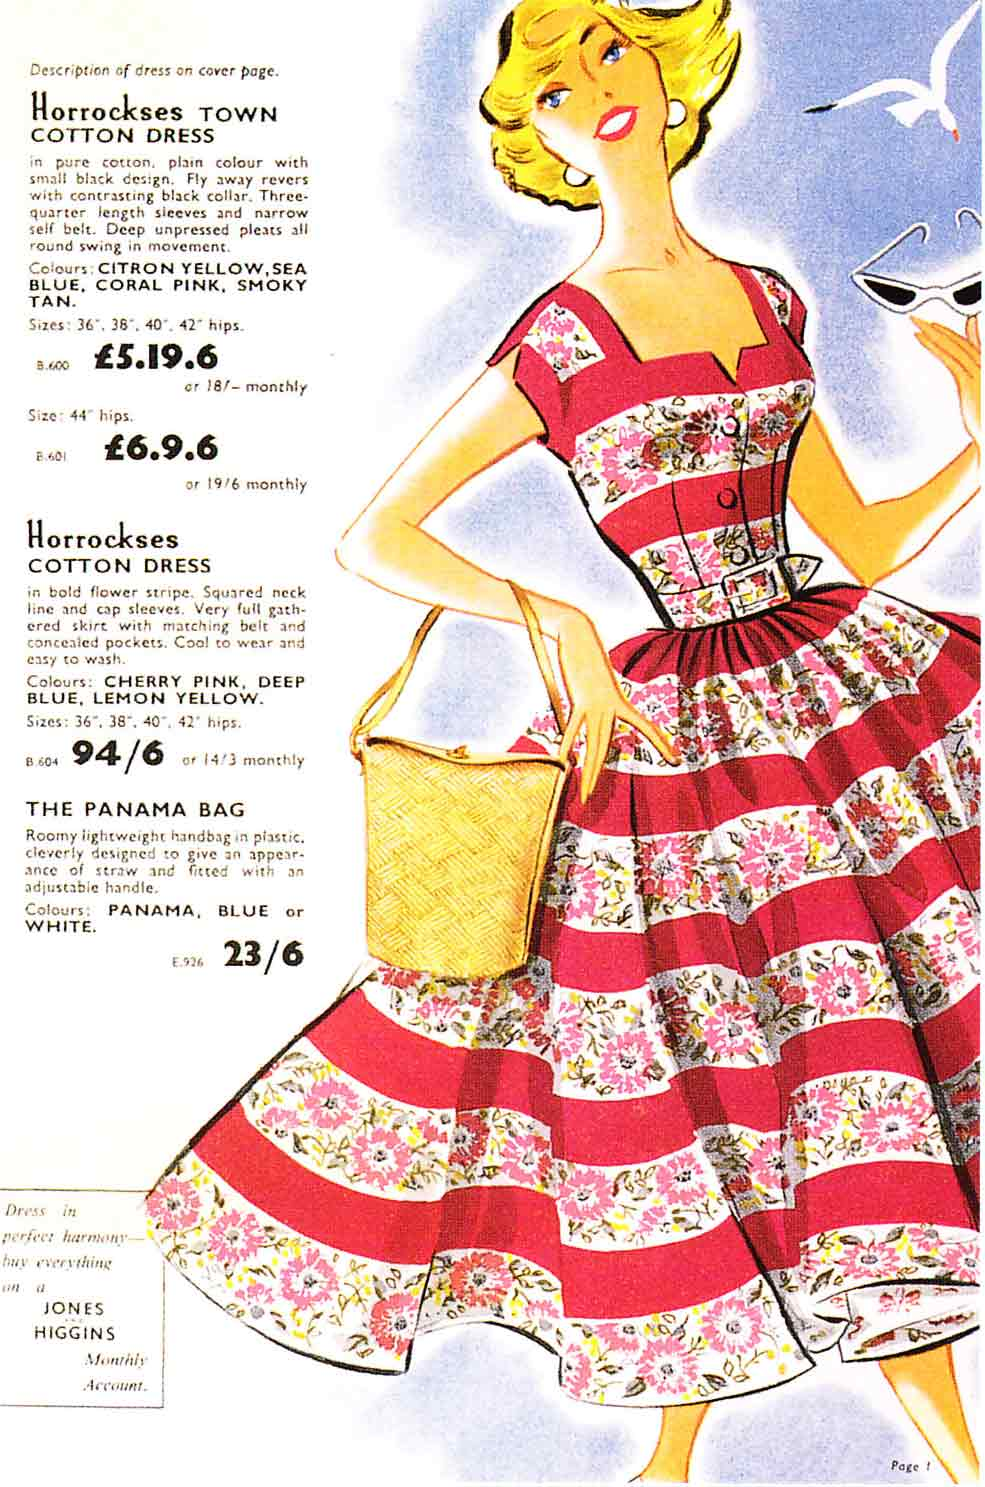 An advert for a 1950s frock